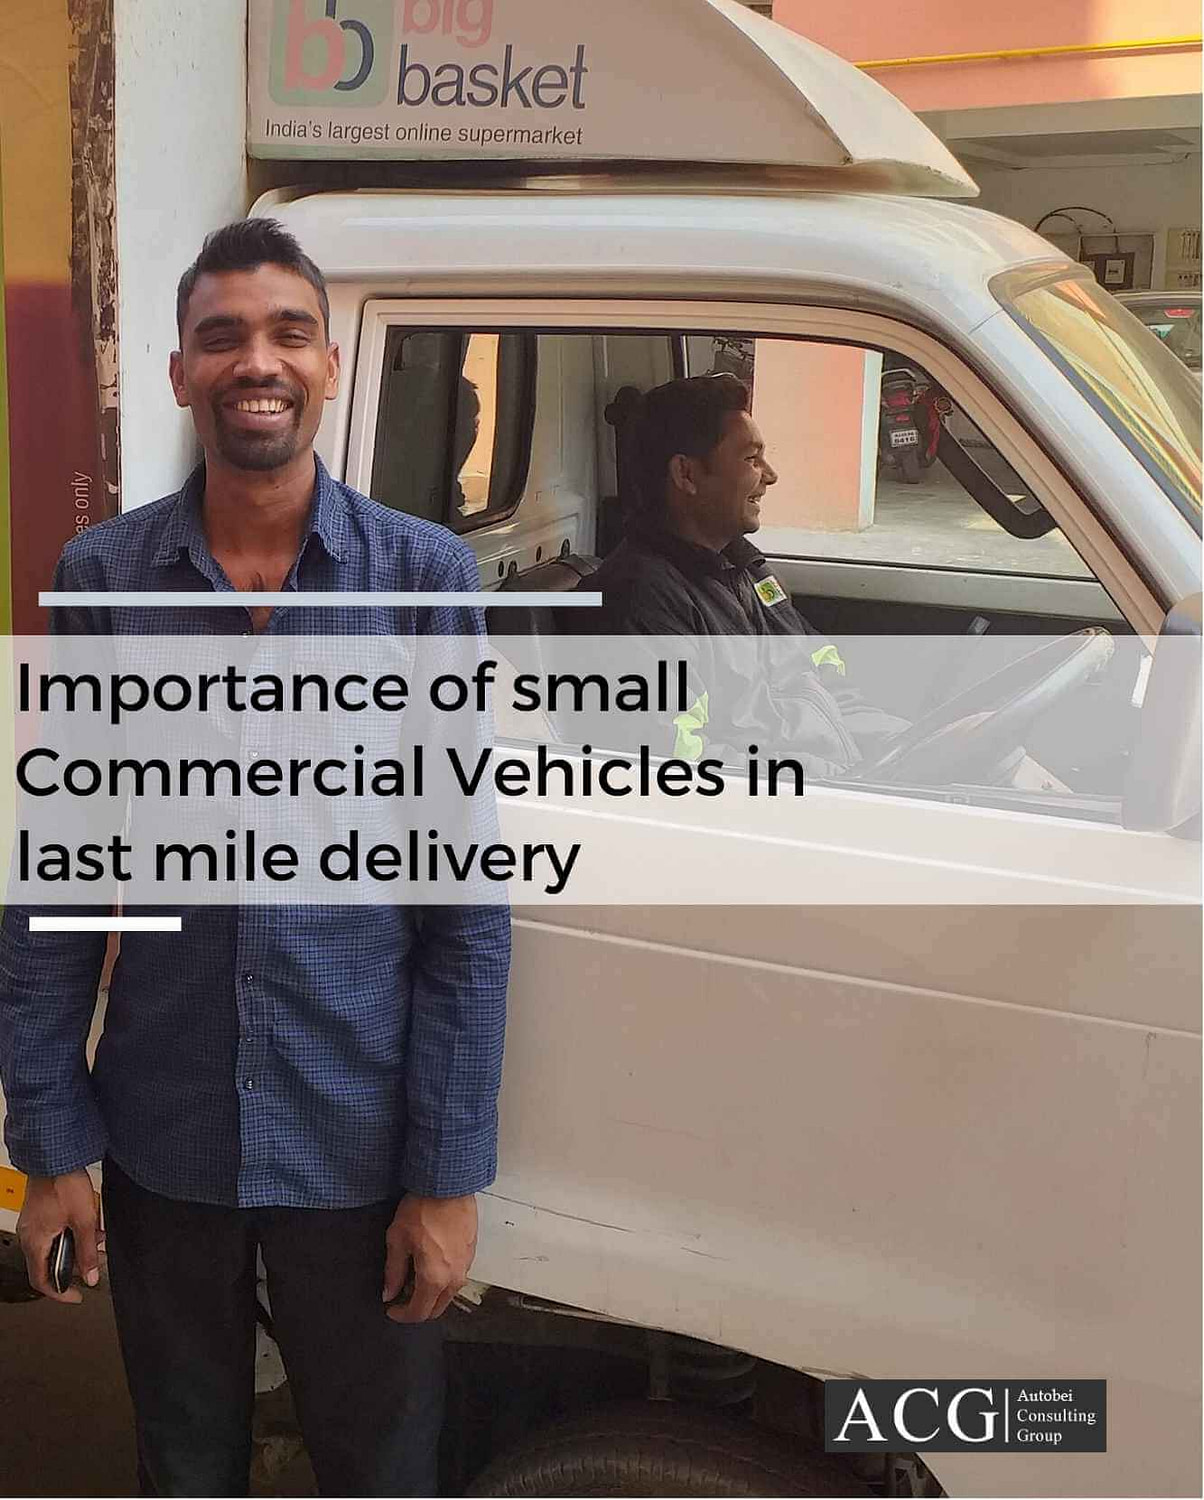 Importance of small commercial vehicles in last mile delivery